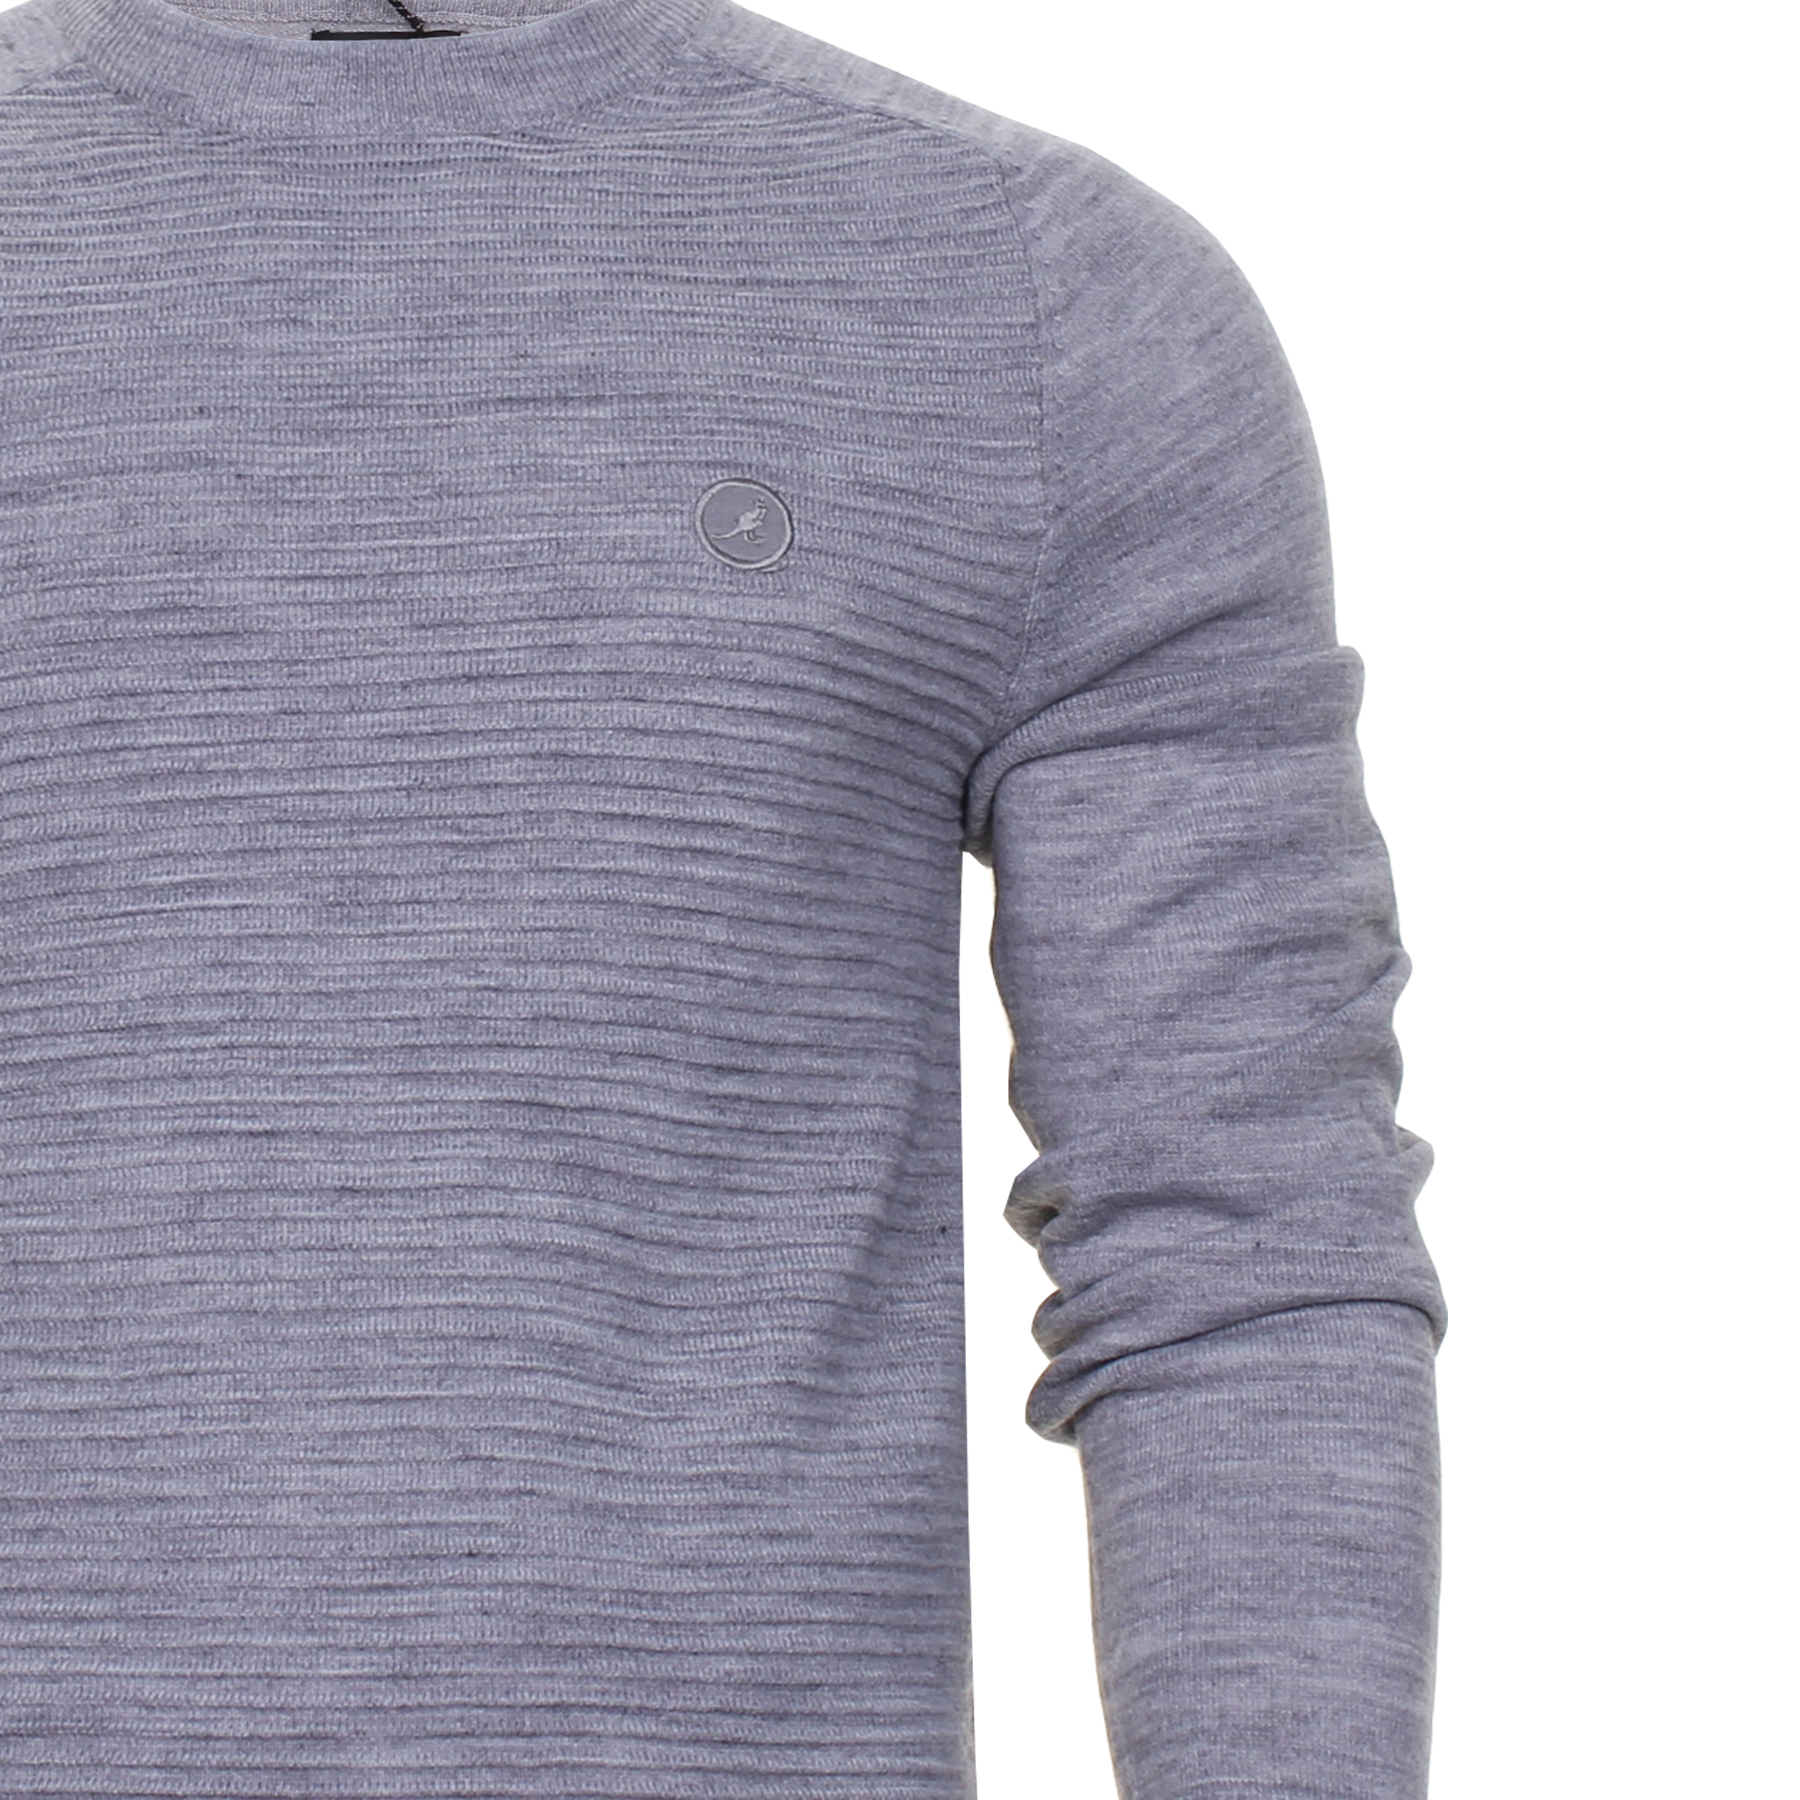 M XL, L Kangol New Crew Neck Long Sleeve Jumpers For Men